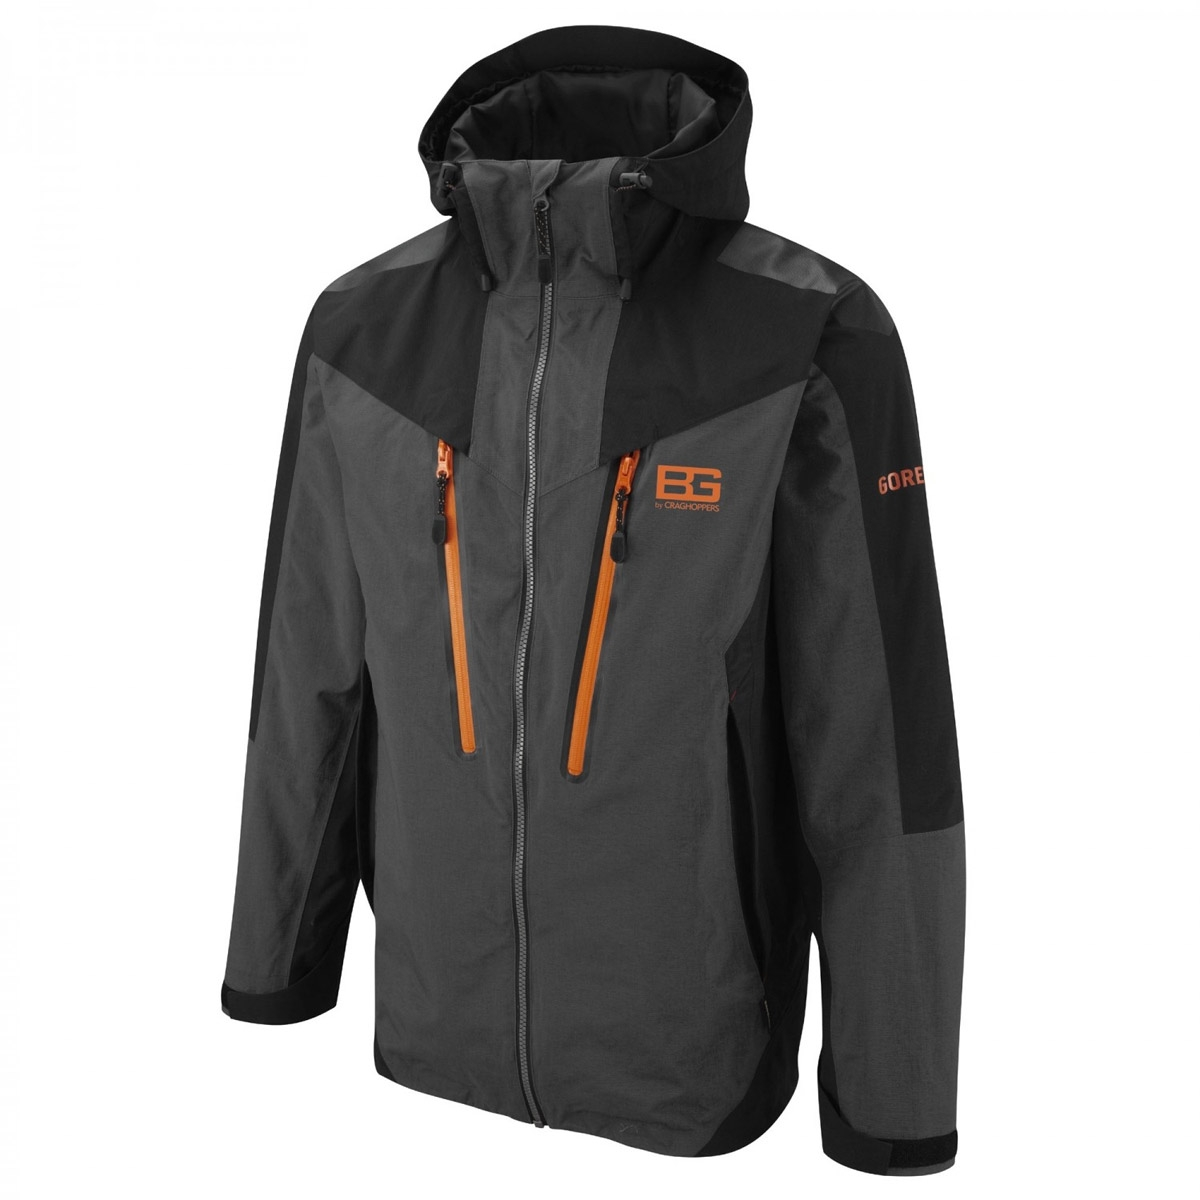 Bear Grylls Craghoppers | Bear Grylls Clothing | Bear Grylls Gerber Gear